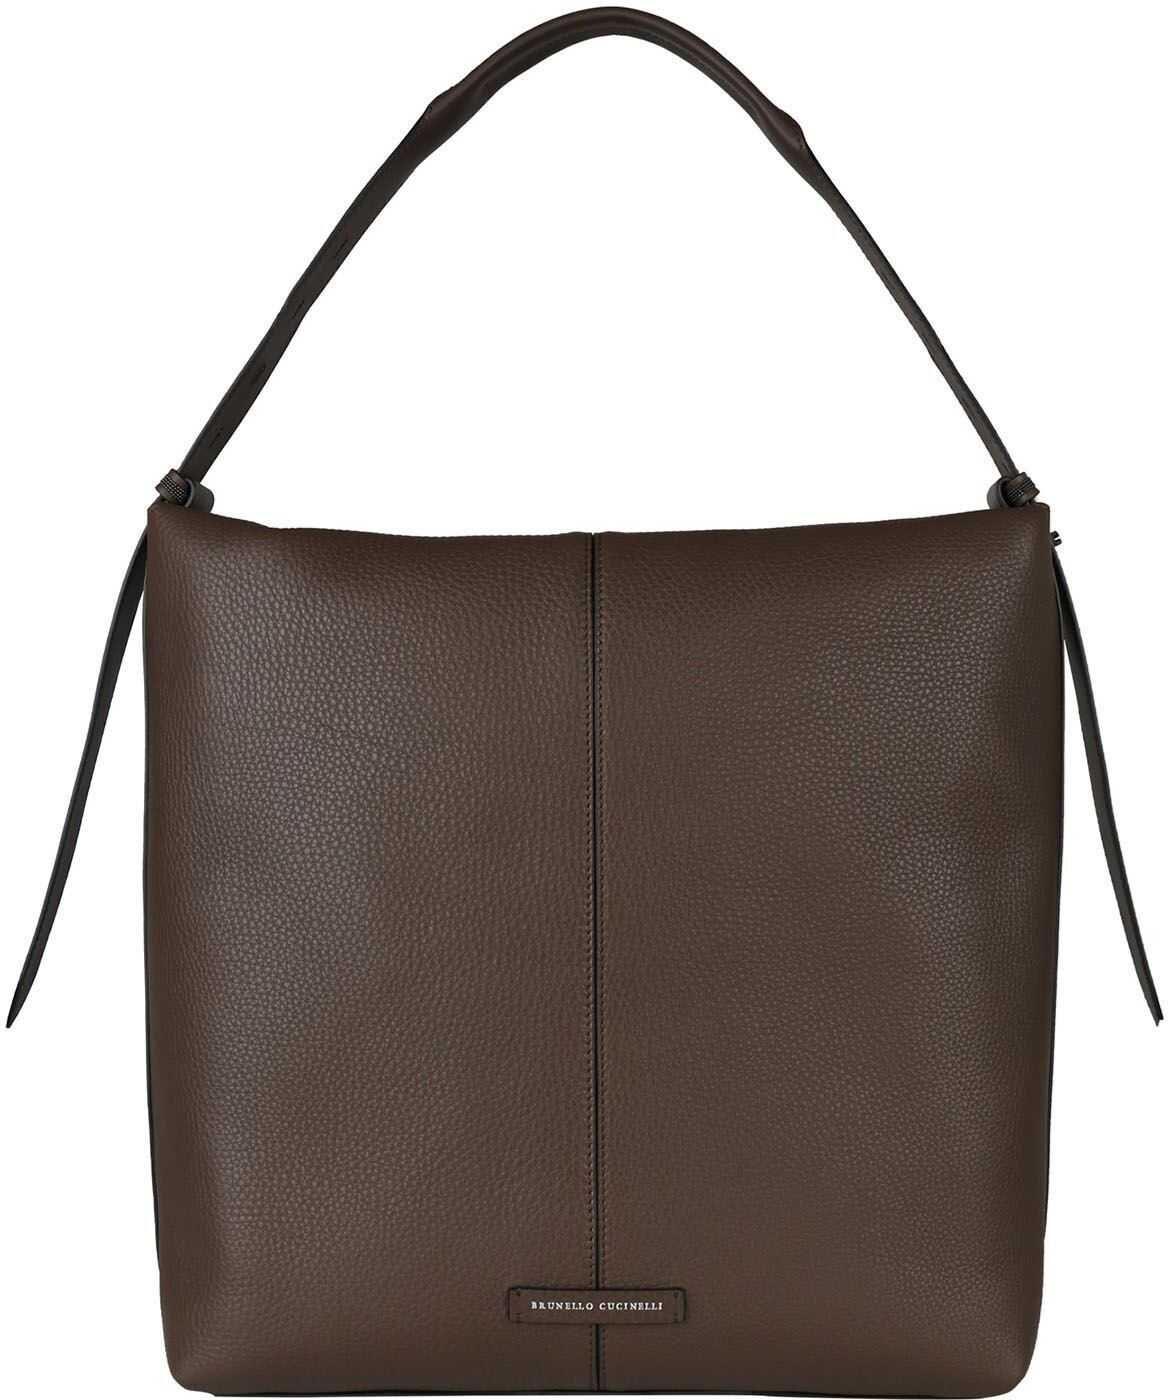 Brunello Cucinelli Leather Shoulder Bag In Brown MBVND2170 C7891 Brown imagine b-mall.ro